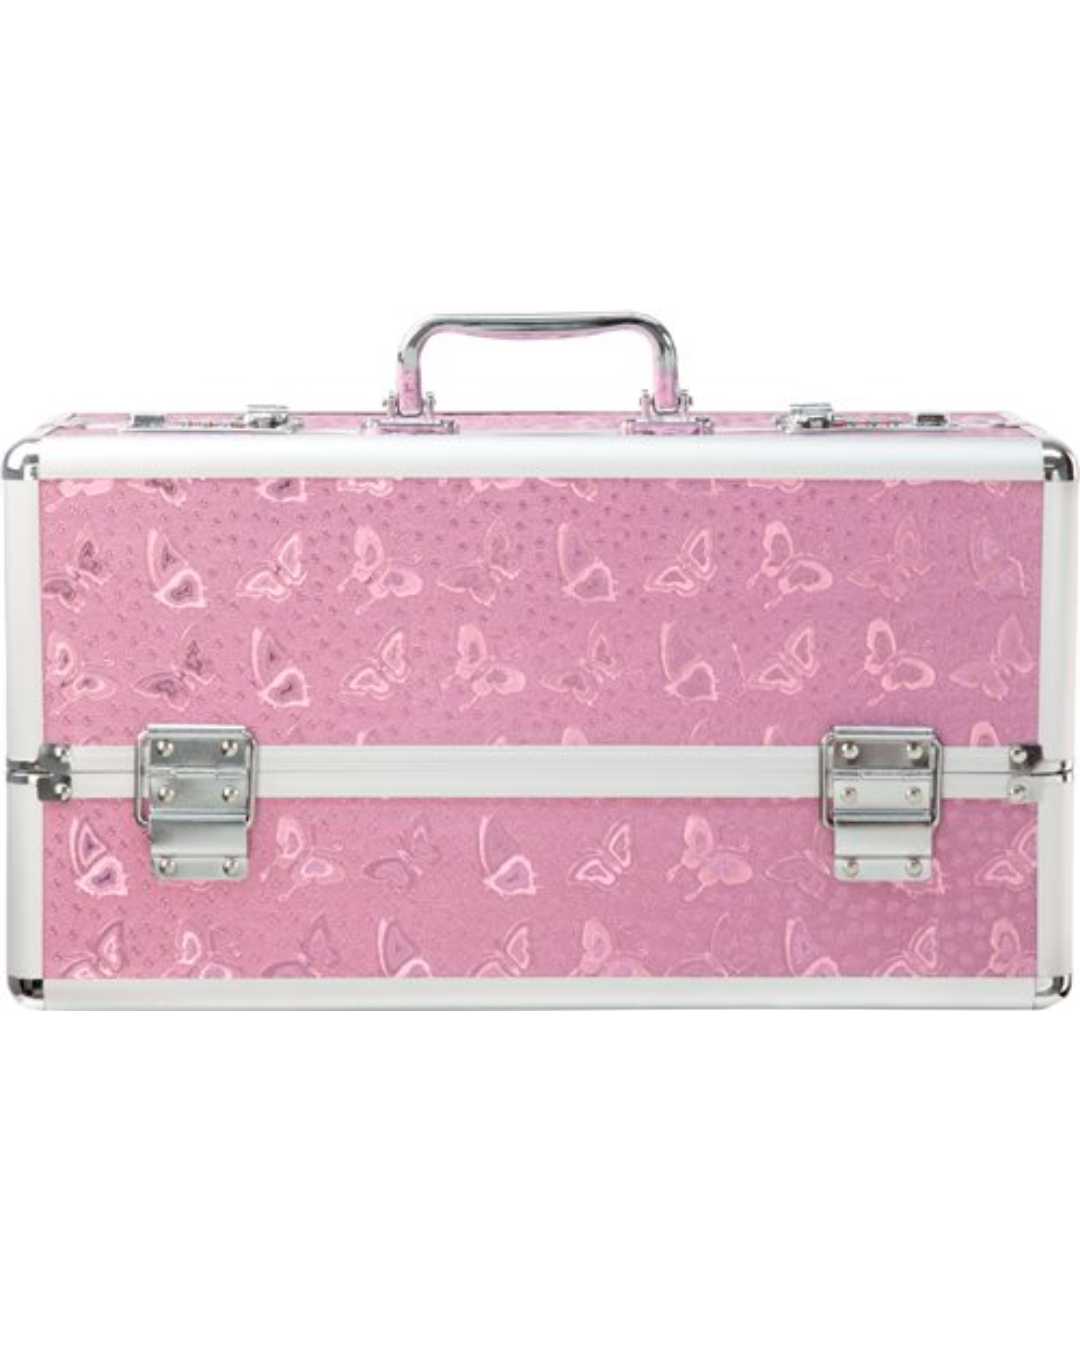 Lockable Vibrator Case Large Double Tiered - Pink